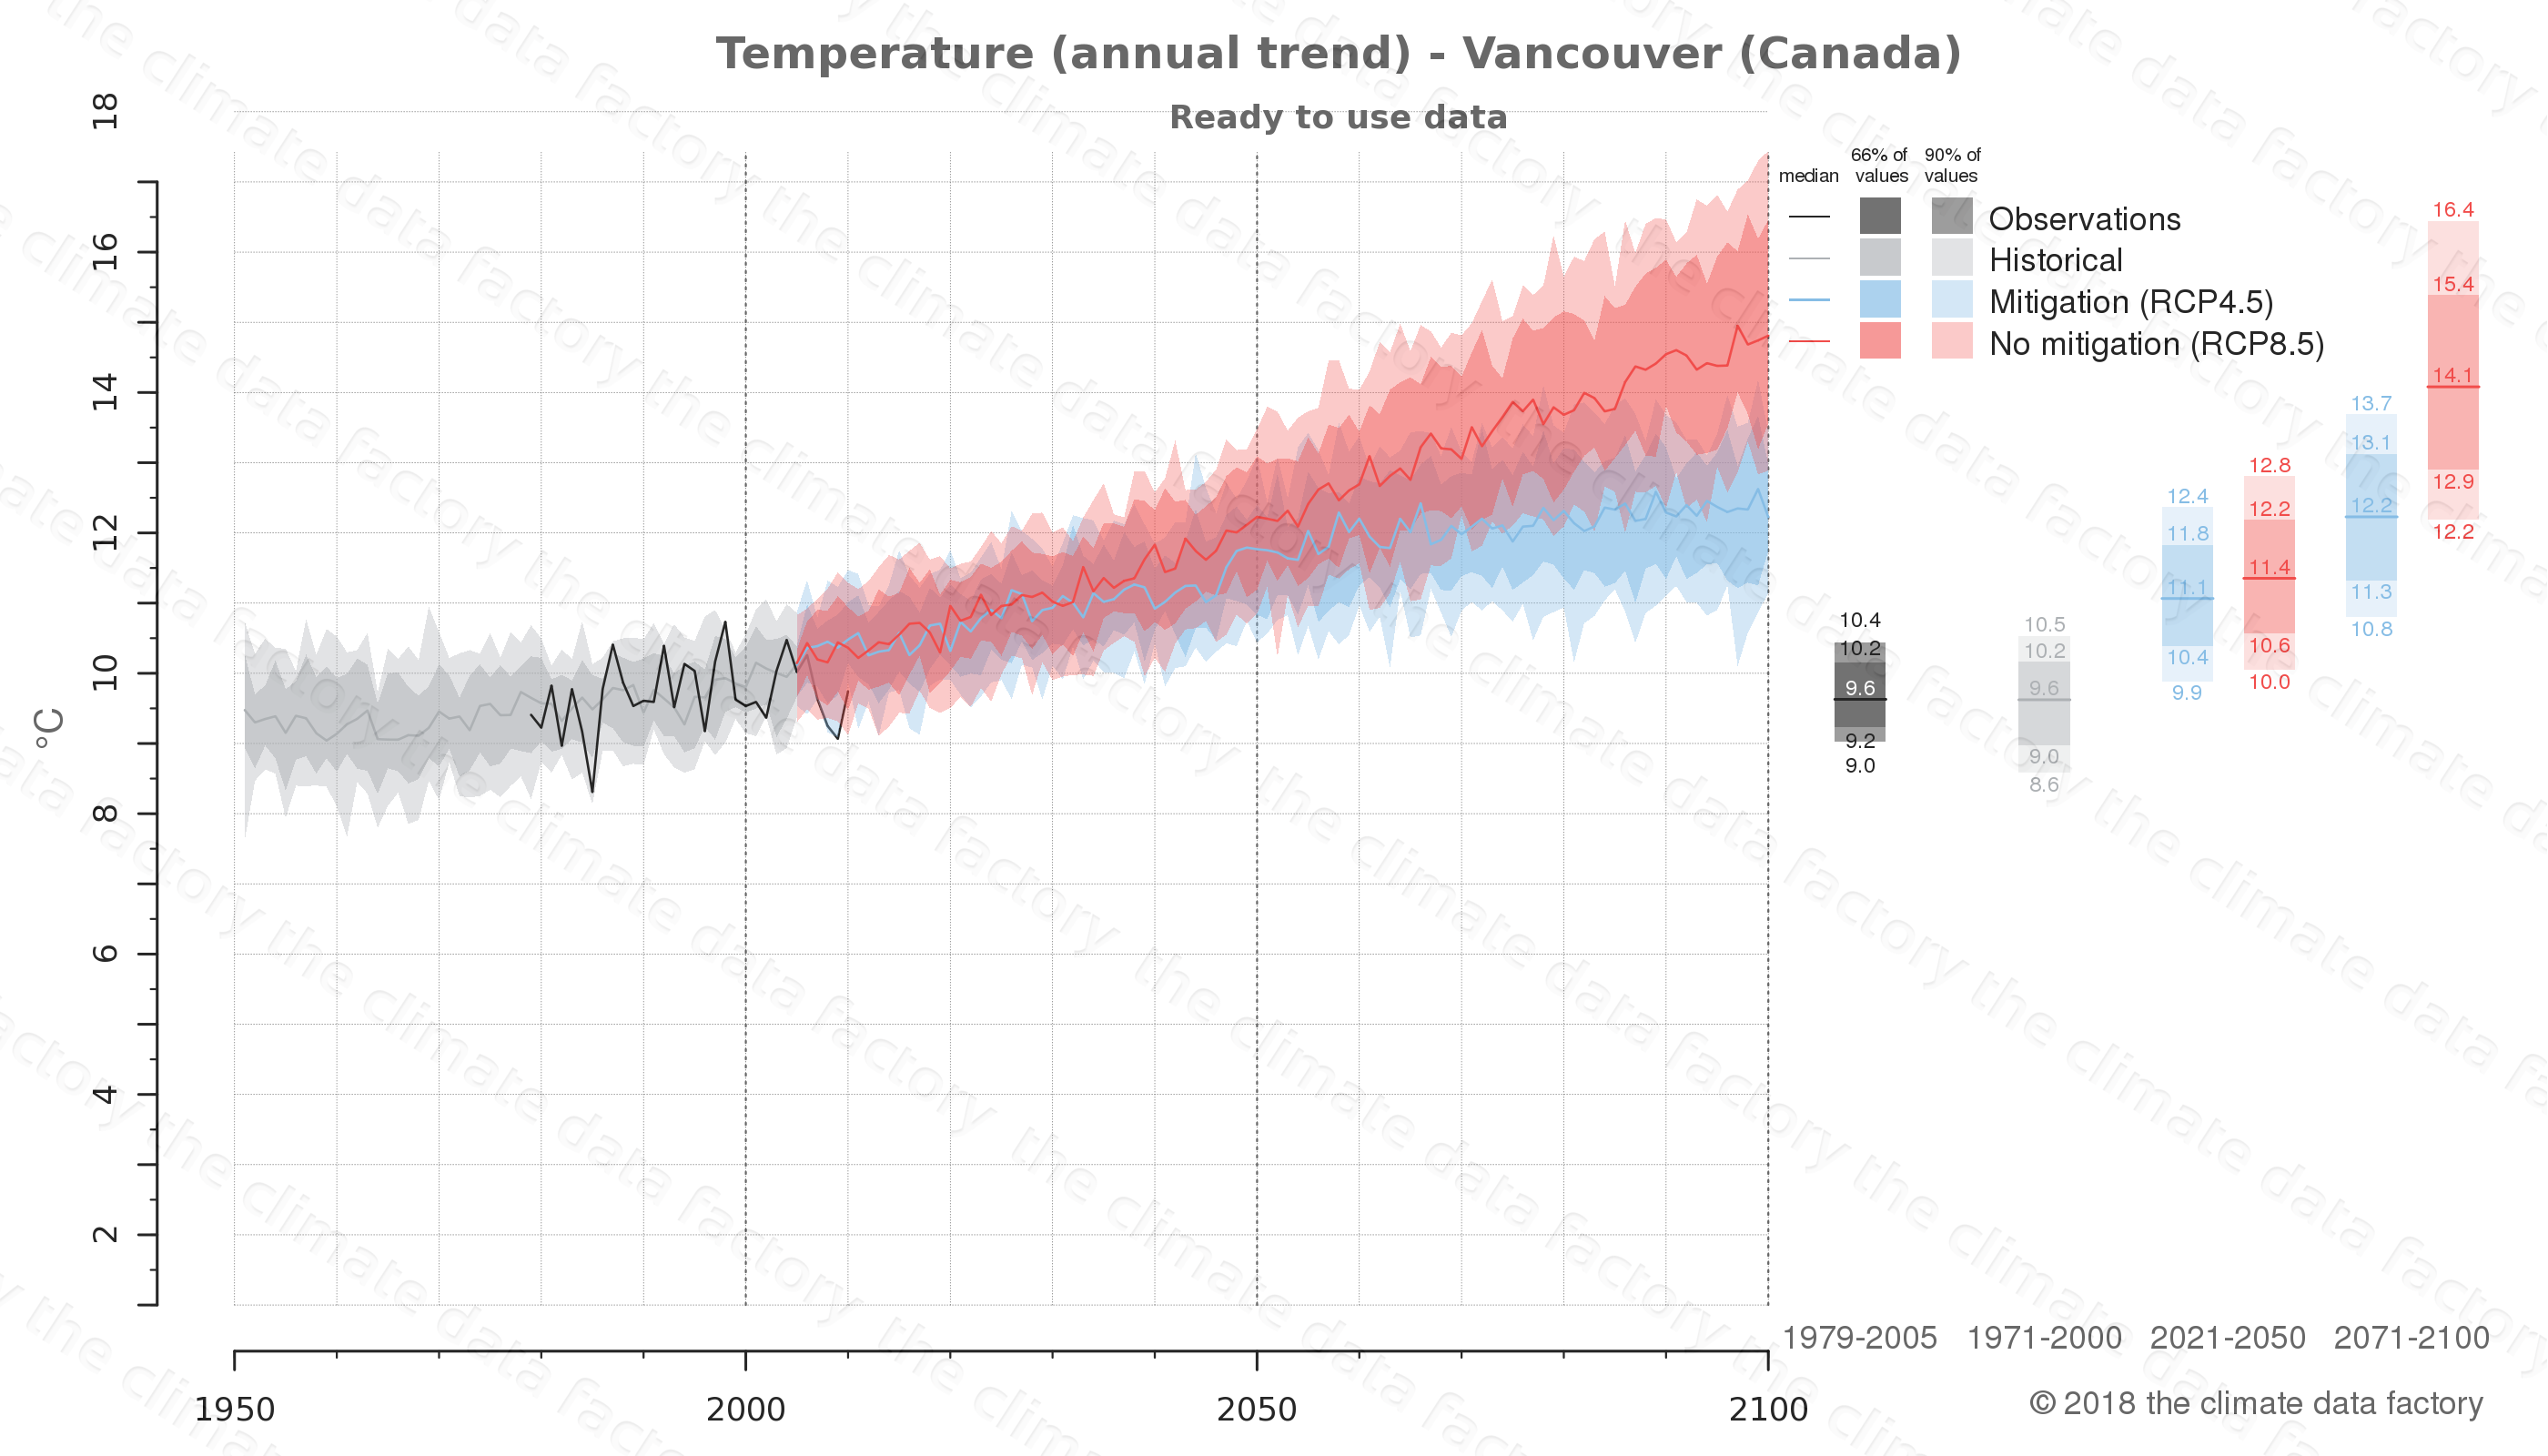 climate change data policy adaptation climate graph city data temperature vancouver canada